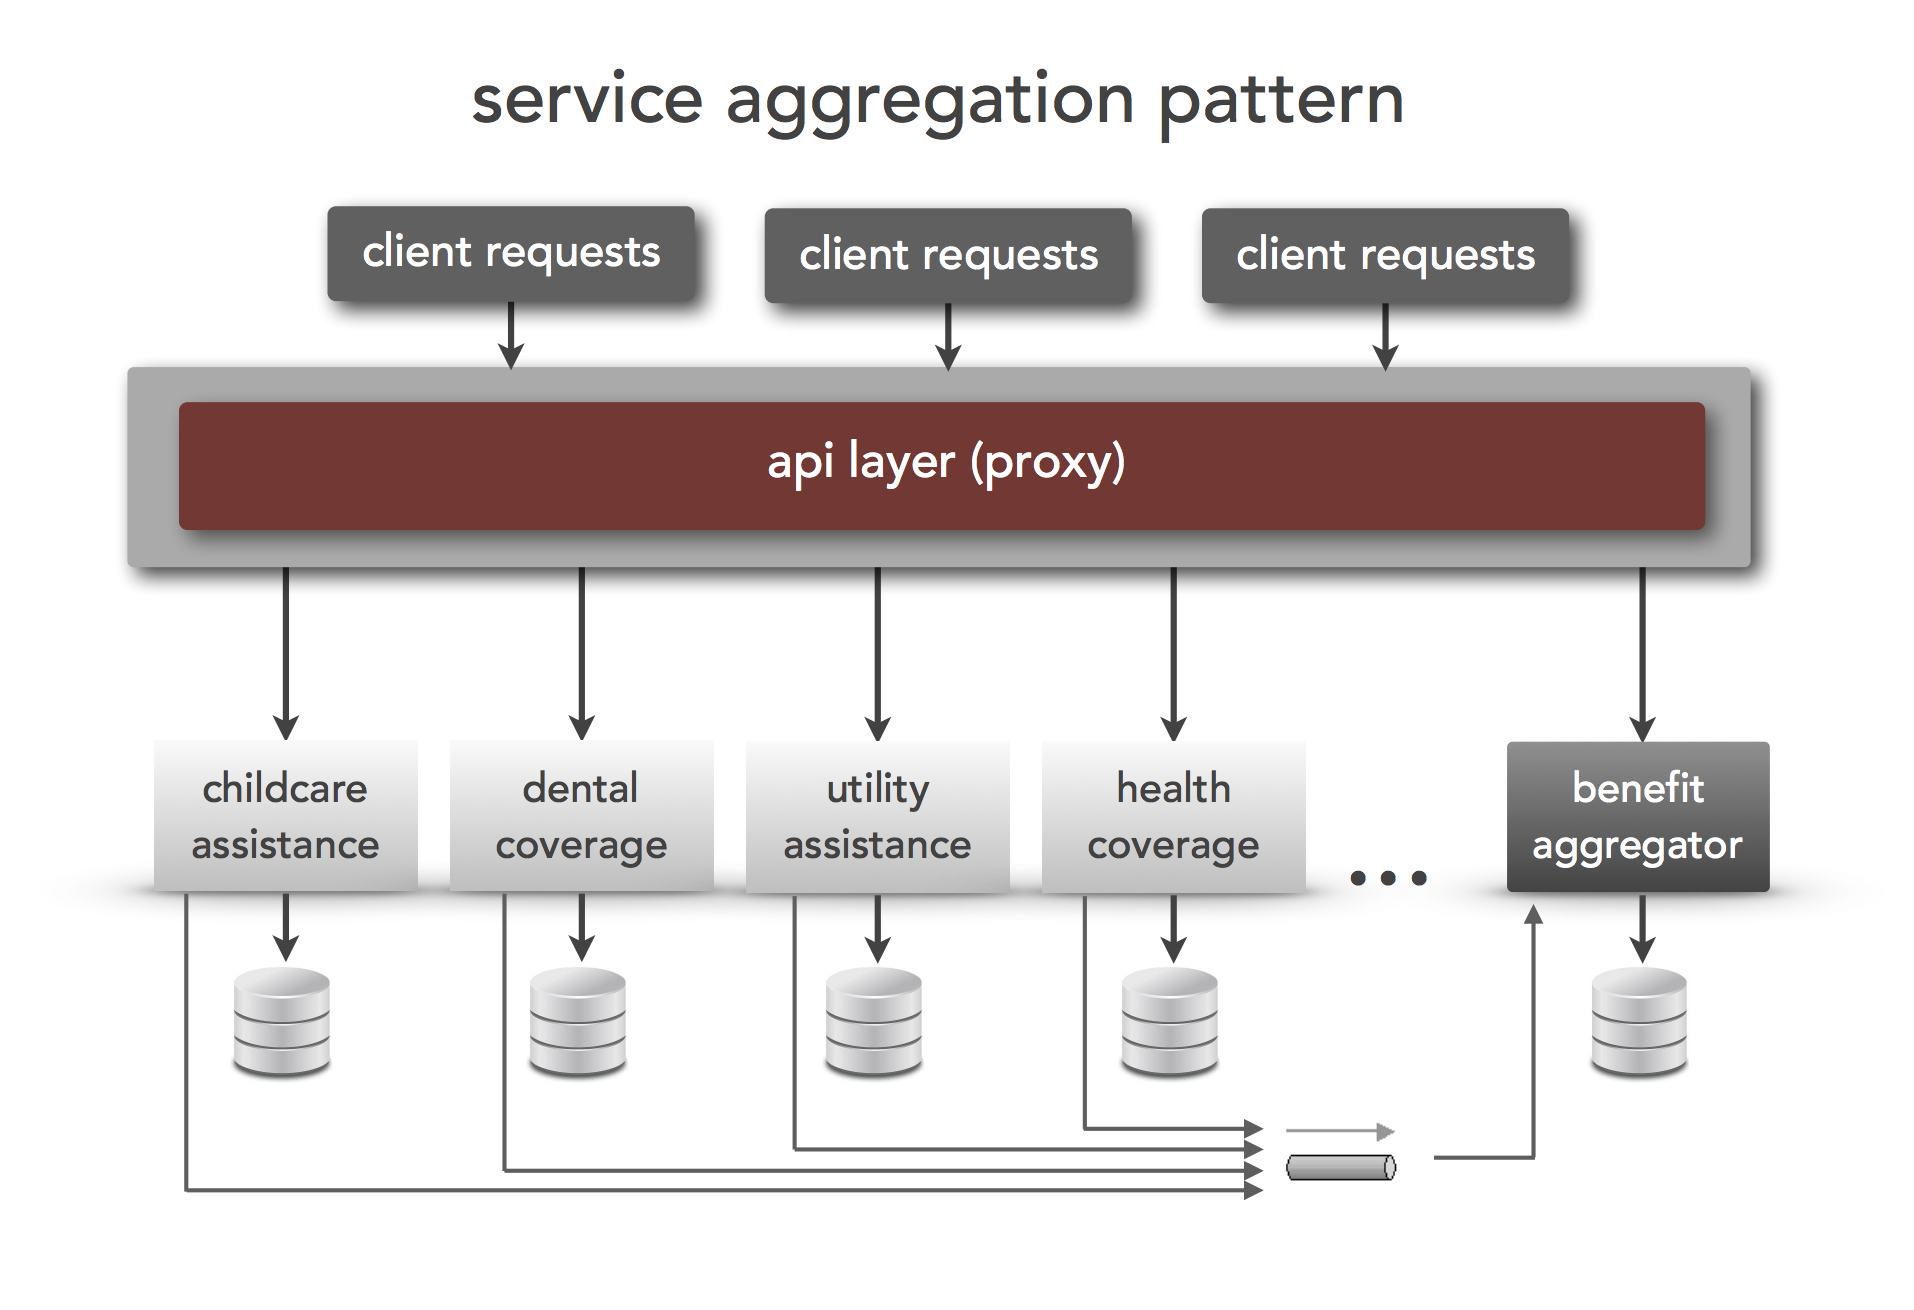 Service aggregation pattern